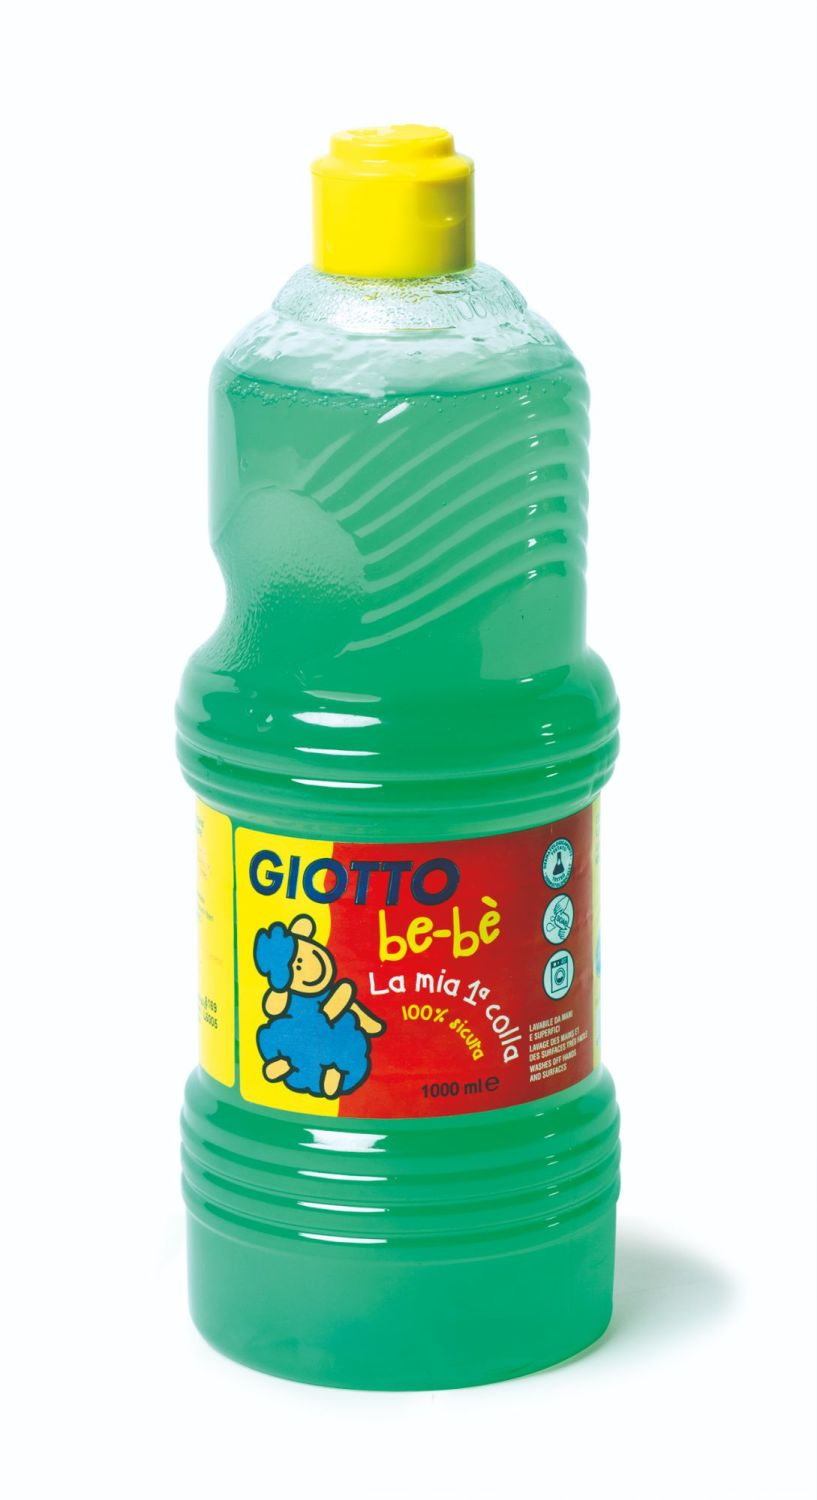 Giotto Bebe My First Liquid Paste Adhesive - 1000ml - Each